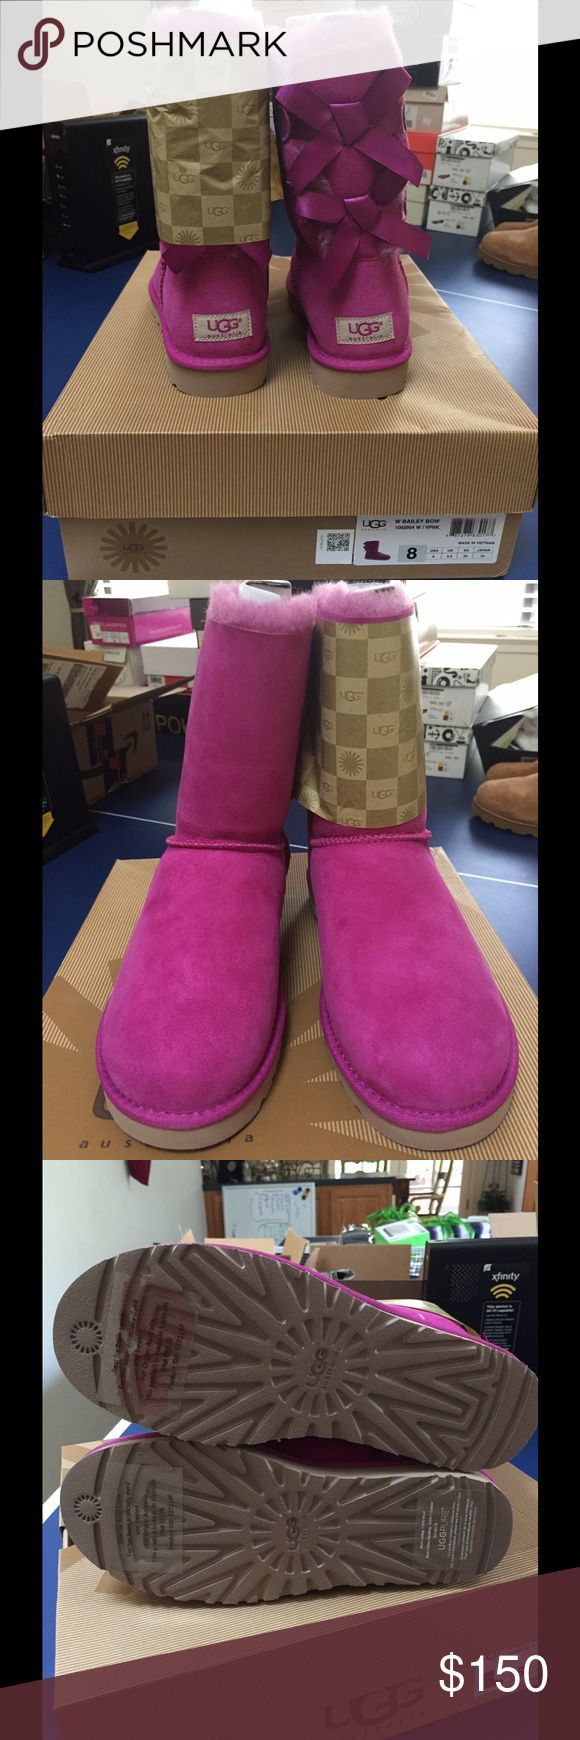 Ugg Boots, Guaranteed Authentic Brand new, still in the wrapping and box.  Size 8. Purchased at the Ugg store. Uggs Shoes Winter & Rain Boots